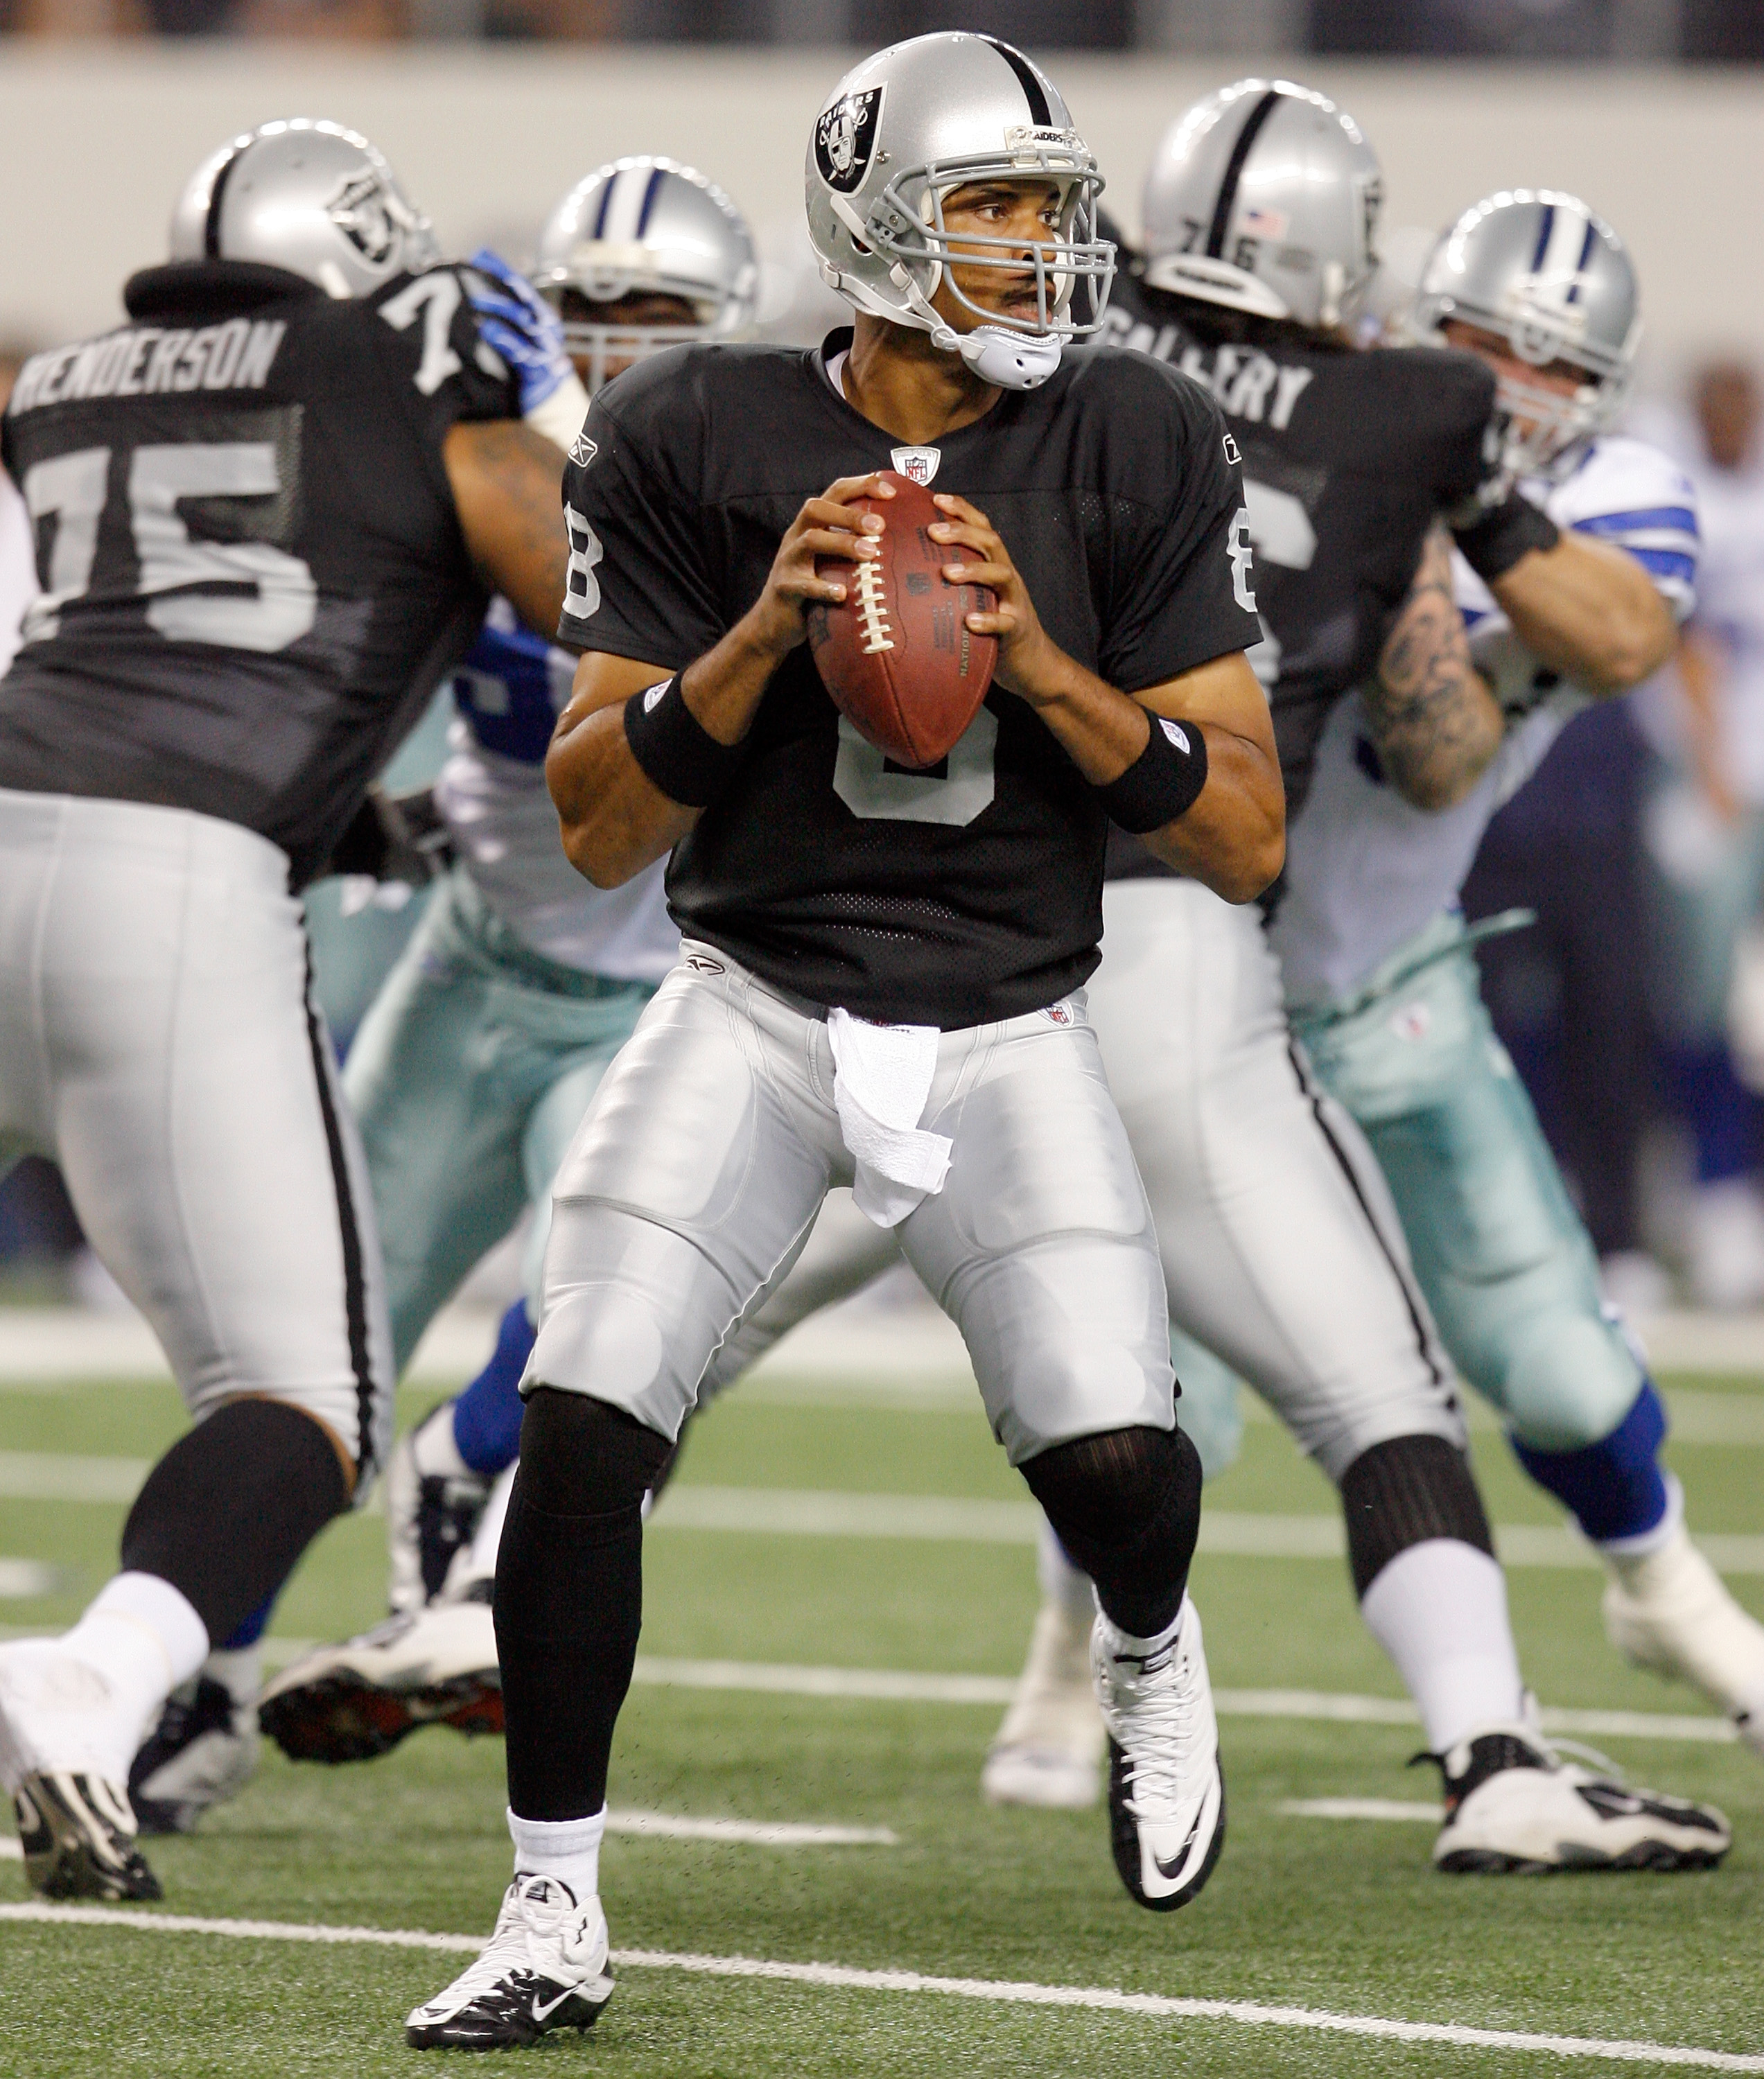 ARLINGTON, TX - AUGUST 12:  Jason Campbell #18 looks to pass in the preseason game againsts the Dallas Cowboys at Dallas Cowboys Stadium on August 12, 2010 in Arlington, Texas.  (Photo by Tom Pennington/Getty Images)